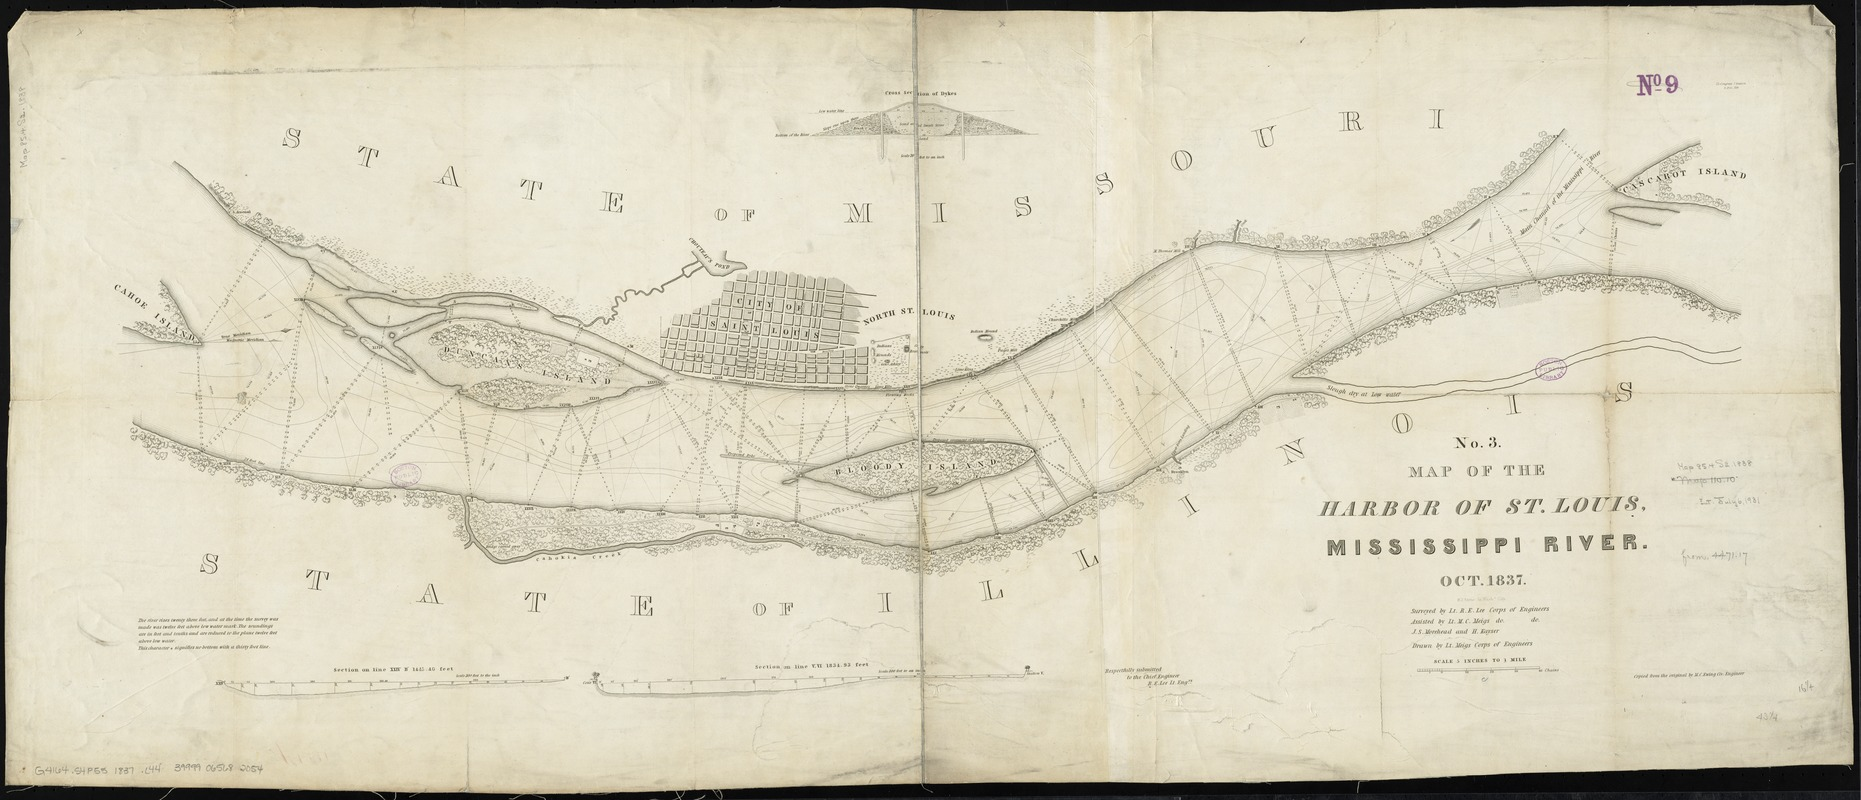 Map of the harbor of St. Louis, Mississippi River, Oct. 1837